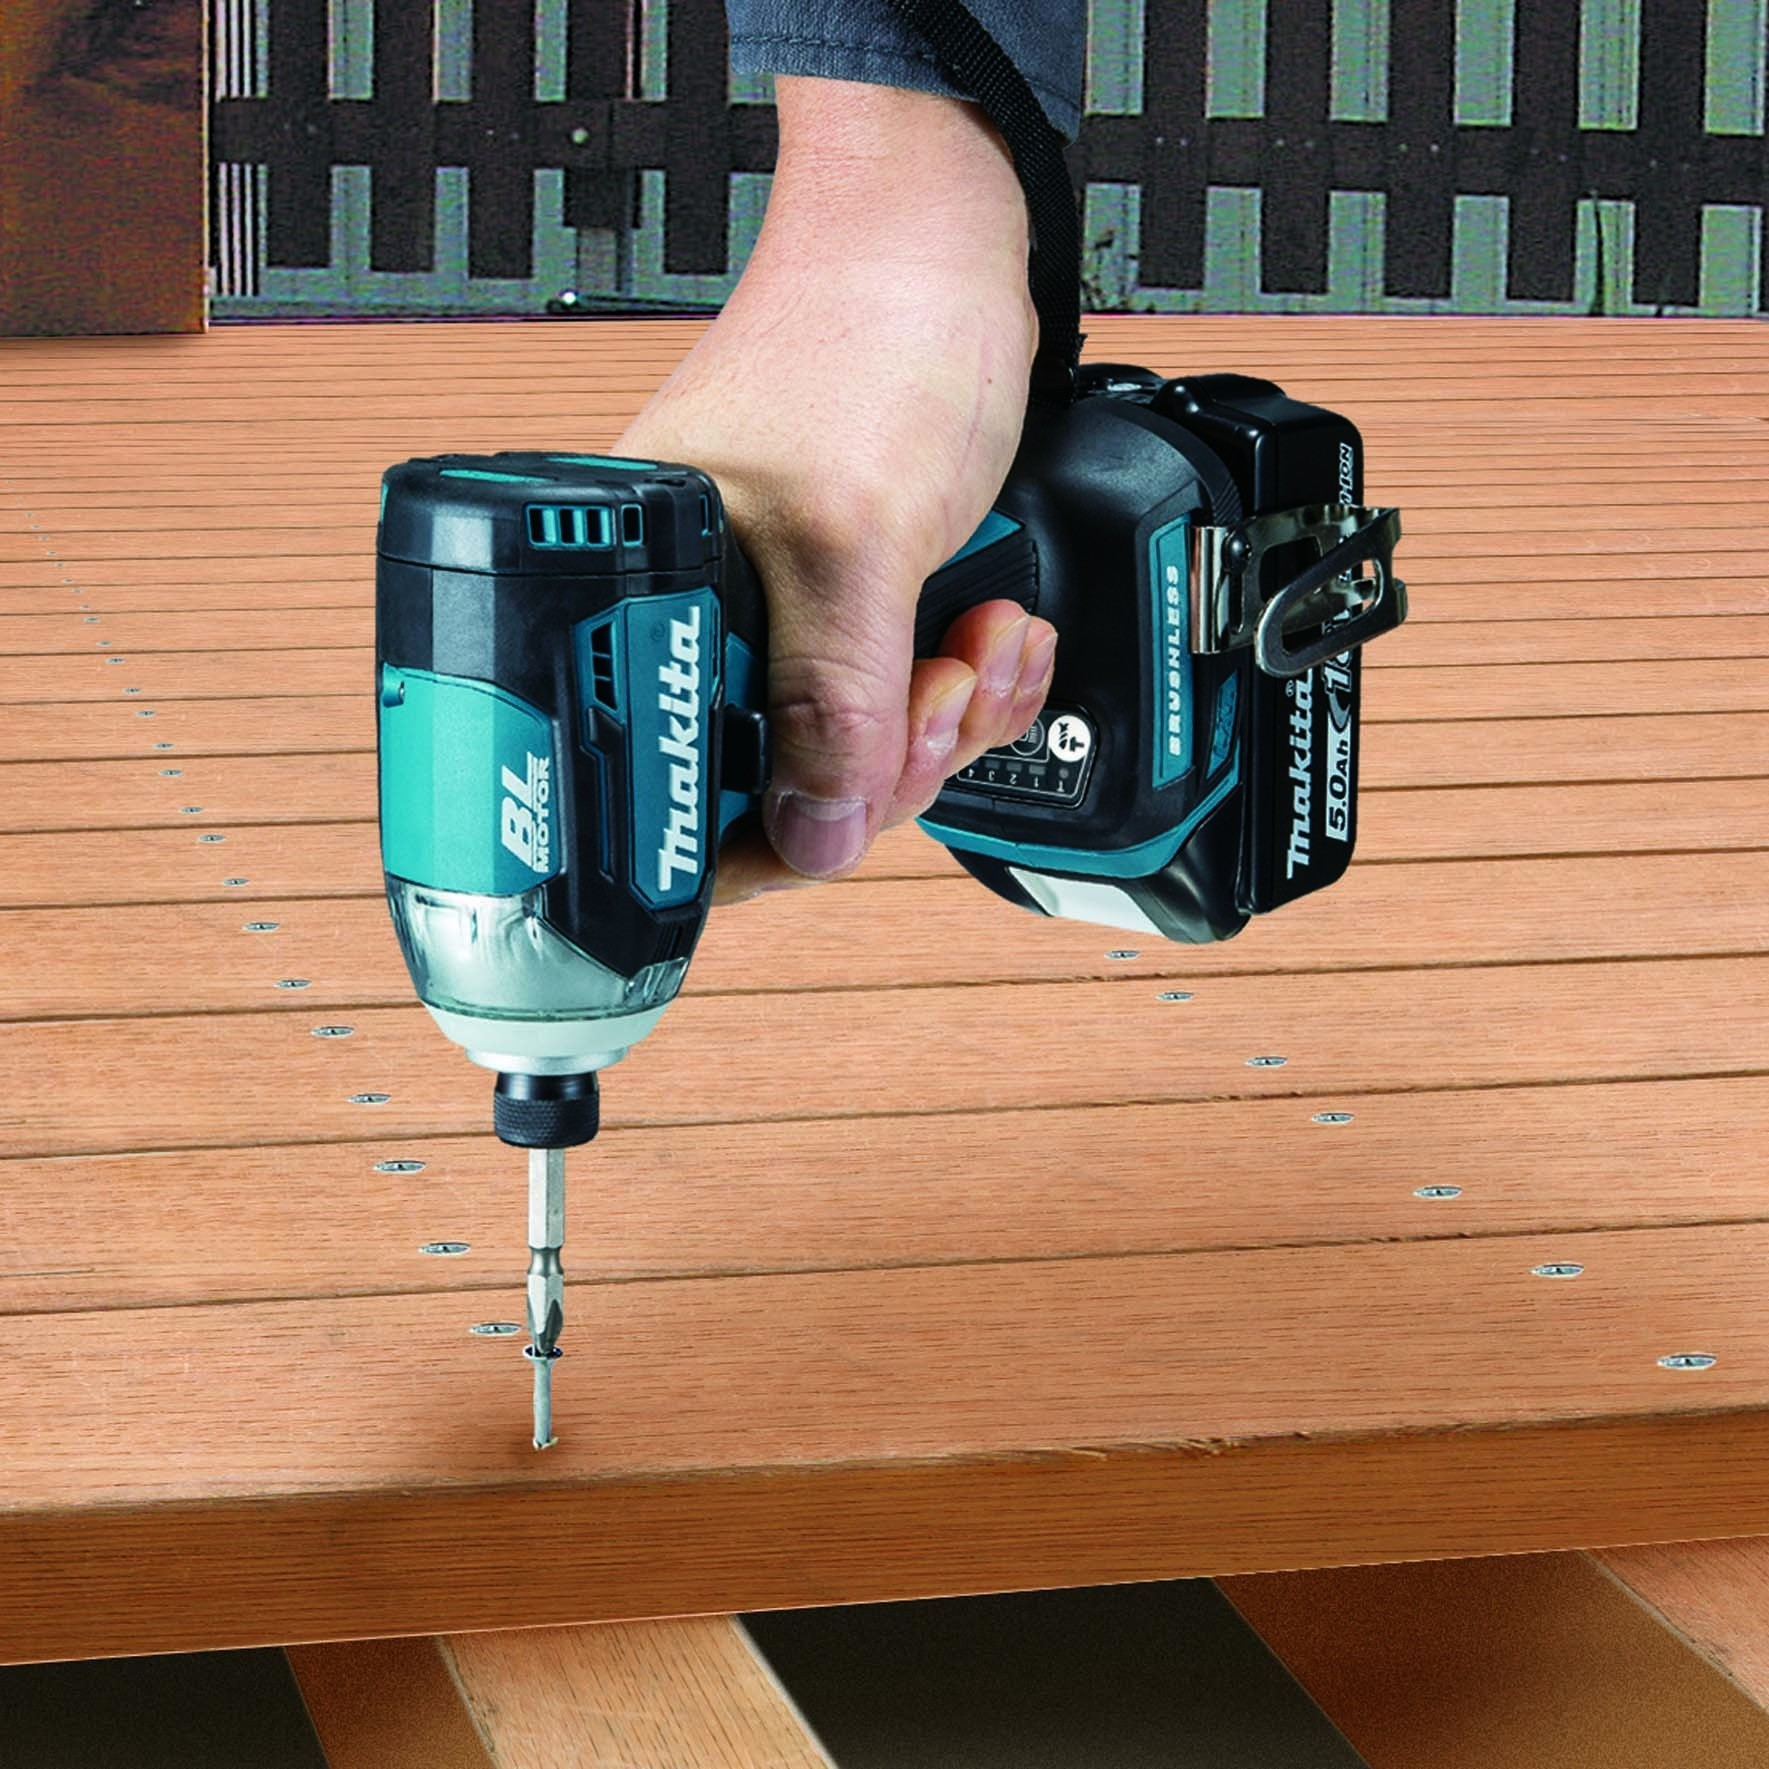 ... Li-Ion Brushless Cordless Impact Driver Body Only | Powertool World